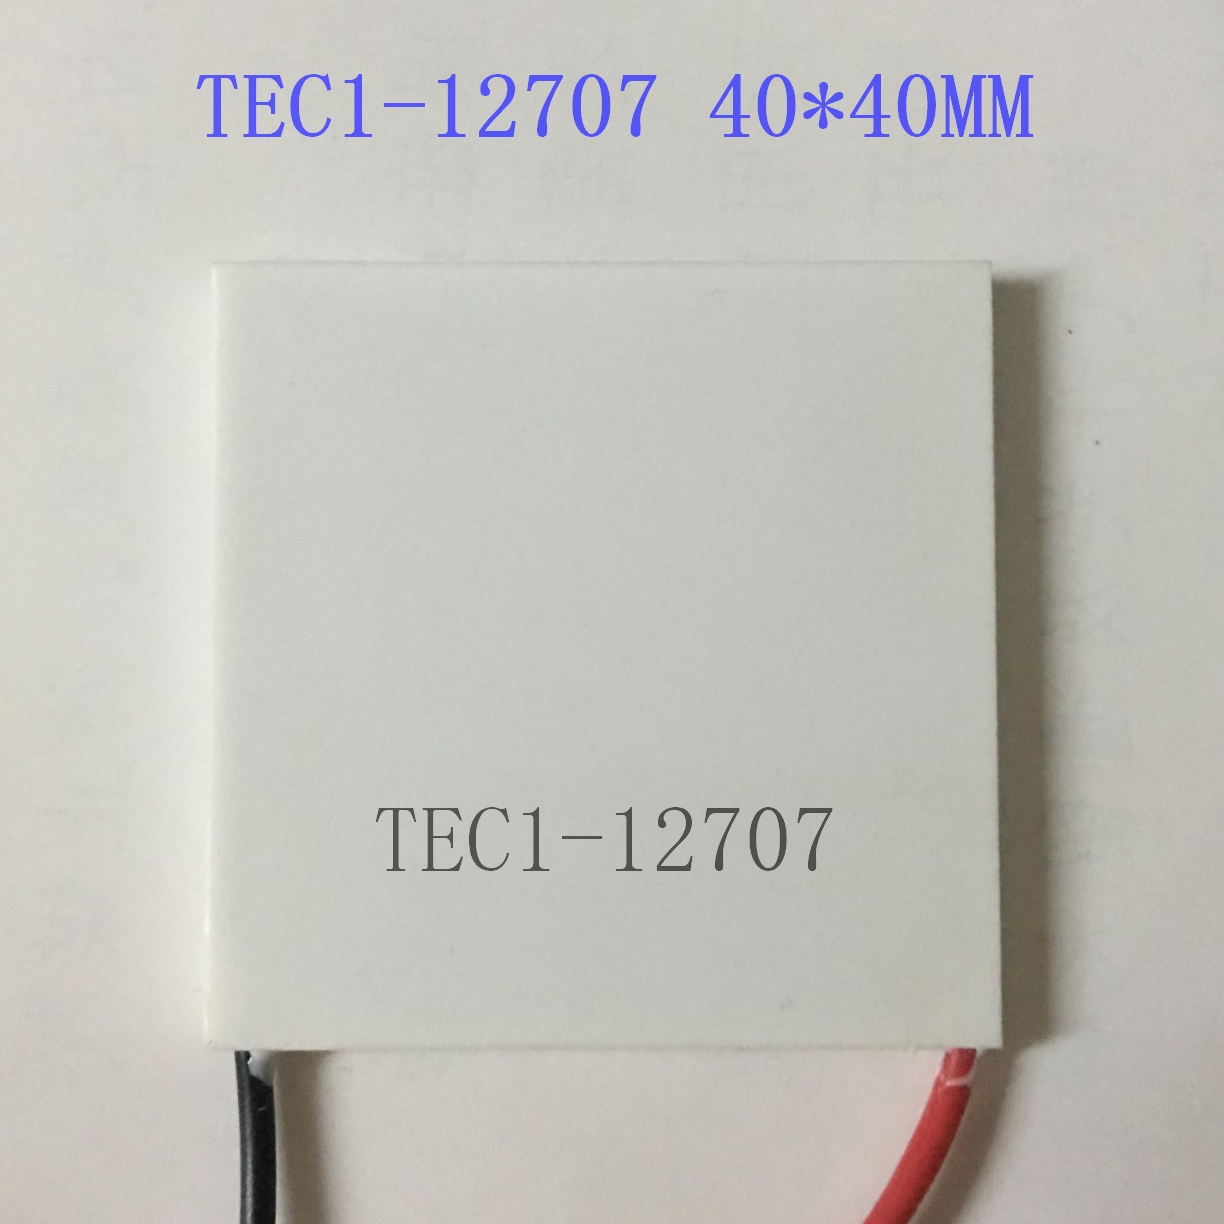 TEC1-12707 40*40MM 12V7A semiconductor cooling plate drinking water machine refrigerator refrigerator cooling plate tec1 12708 12v 8a 72w 40 40mm cooling plate mechanism of semiconductor refrigeration piece drinking water cooling equipment